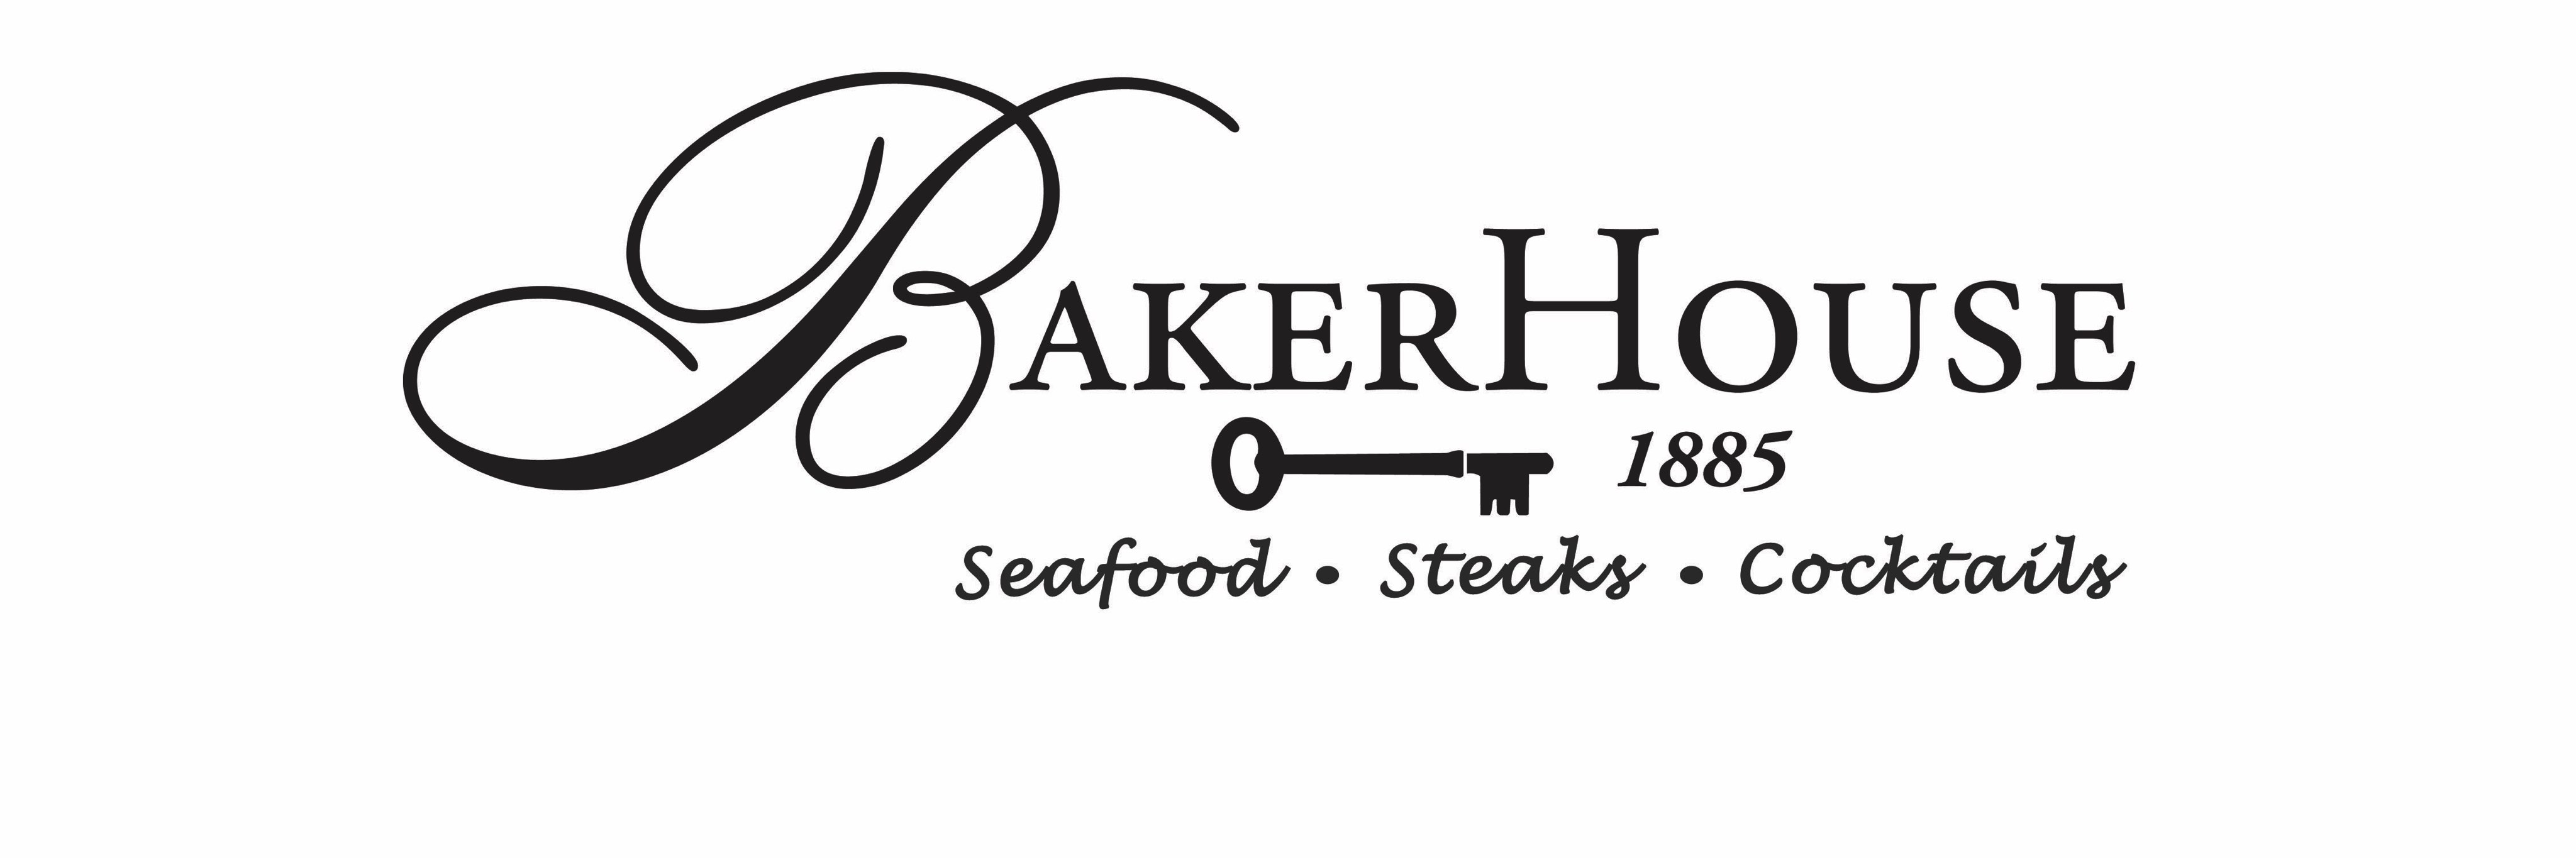 Dine Around The Lakes - Baker House